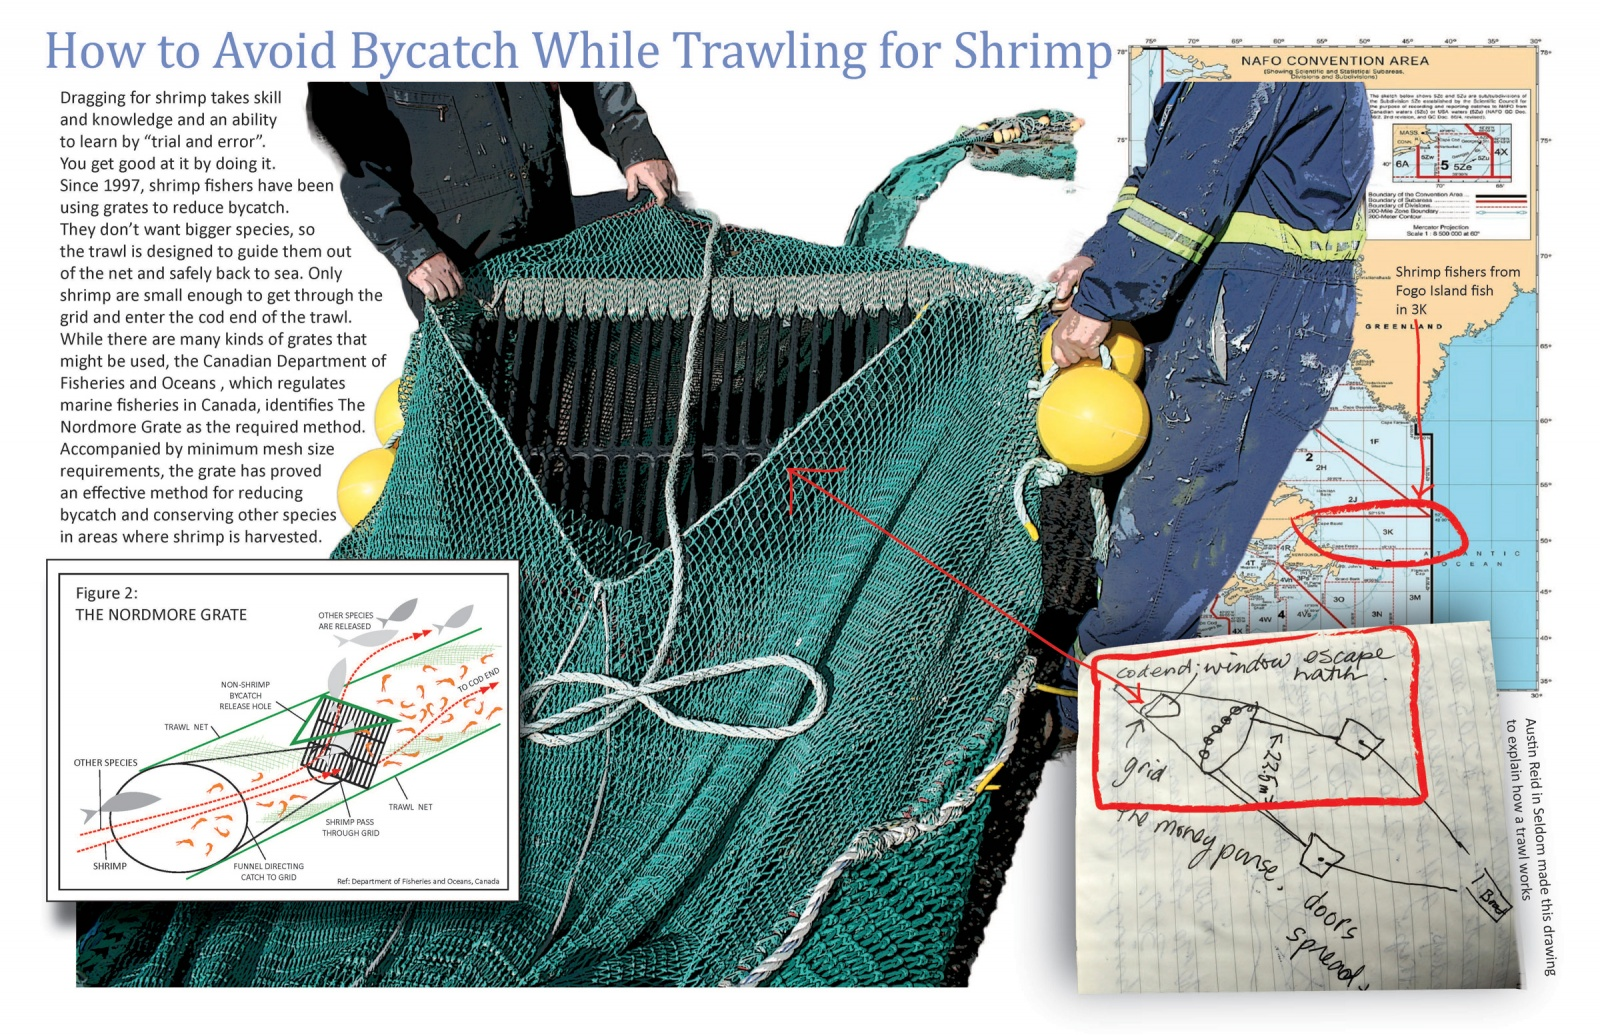 How to Avoid Bycatch While Trawling for Shrimp